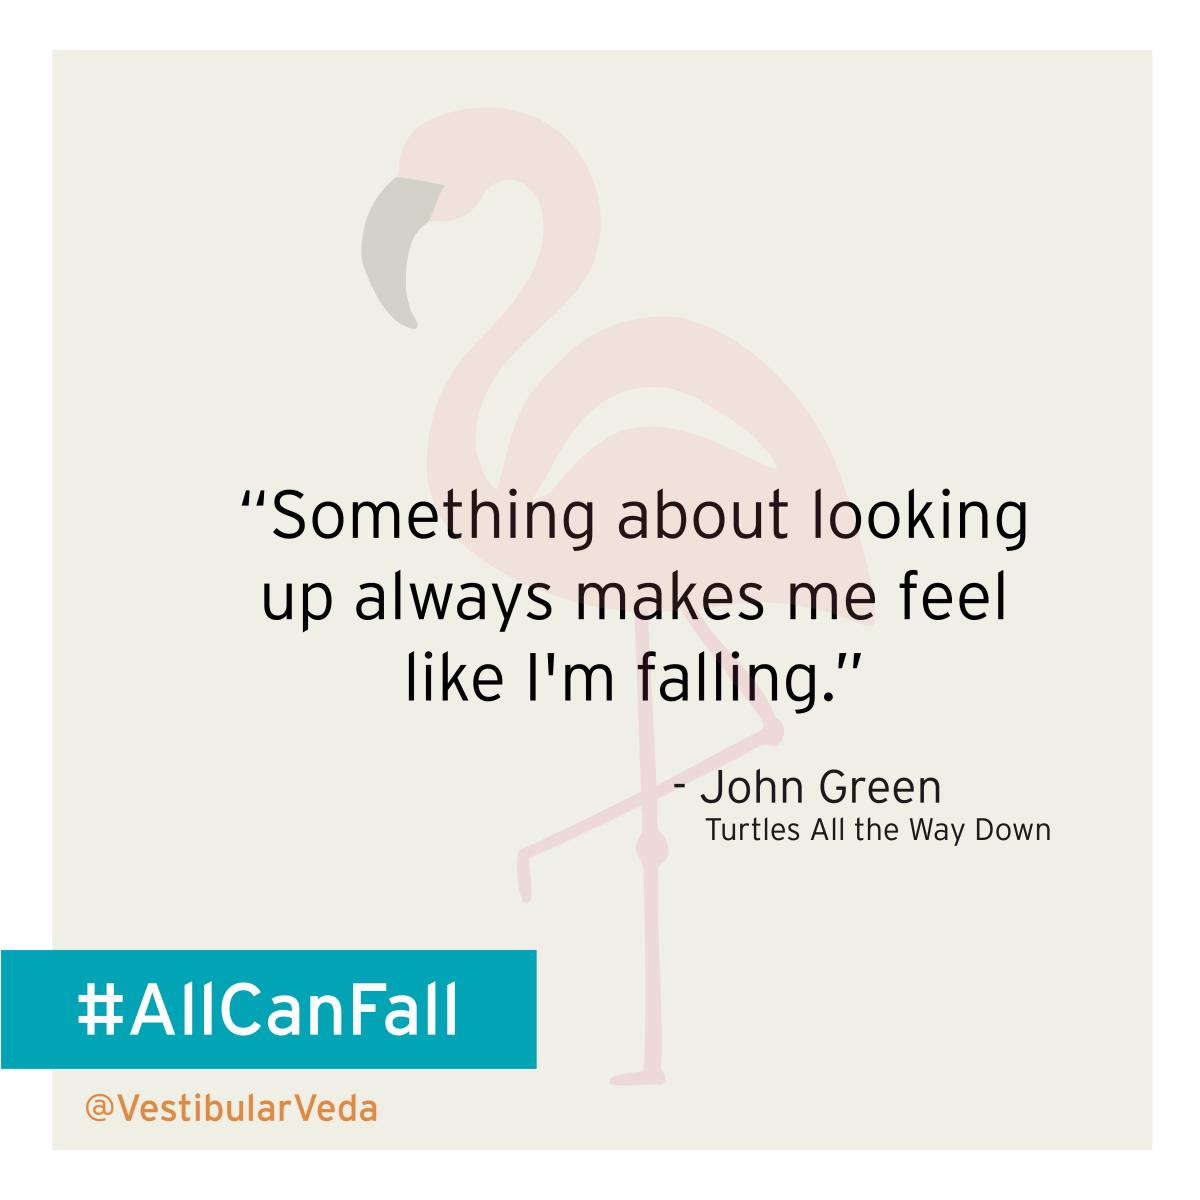 """Something about looking up always makes me feel like I'm falling.""  ― John Green, Turtles All the Way Down"